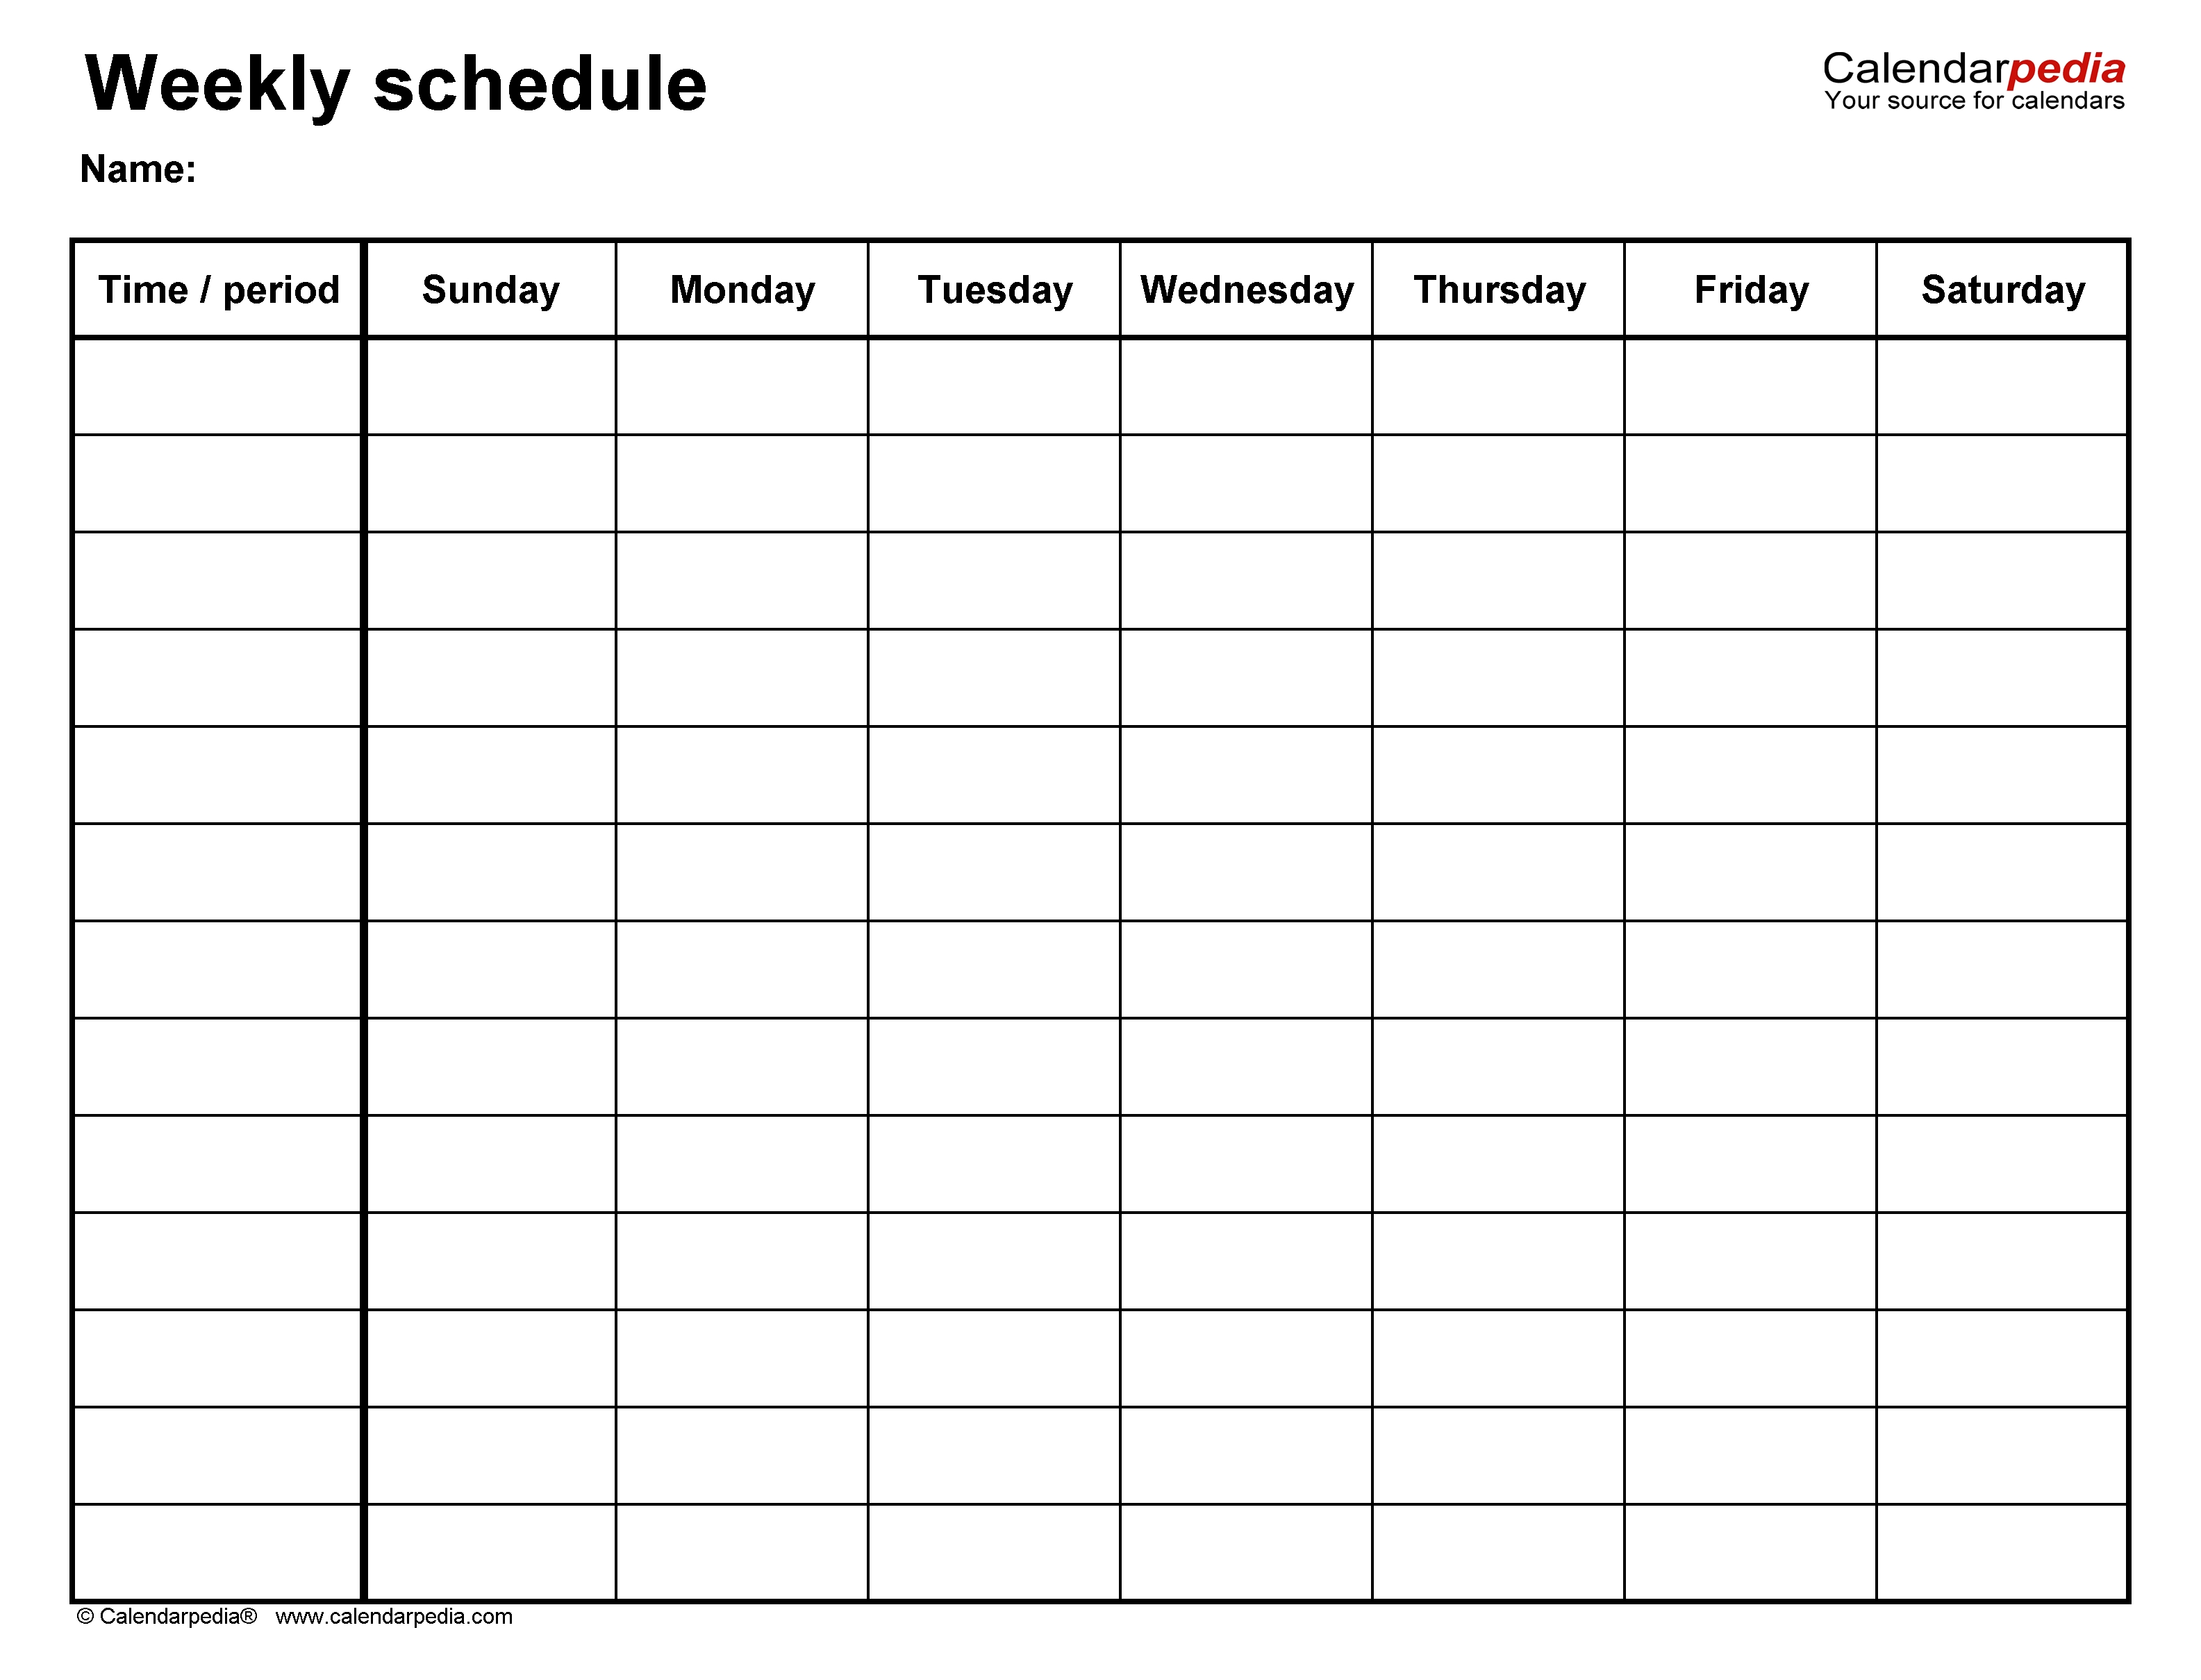 Free Weekly Schedule Templates For Word - 18 Templates-Monday To Friday Timetable Template